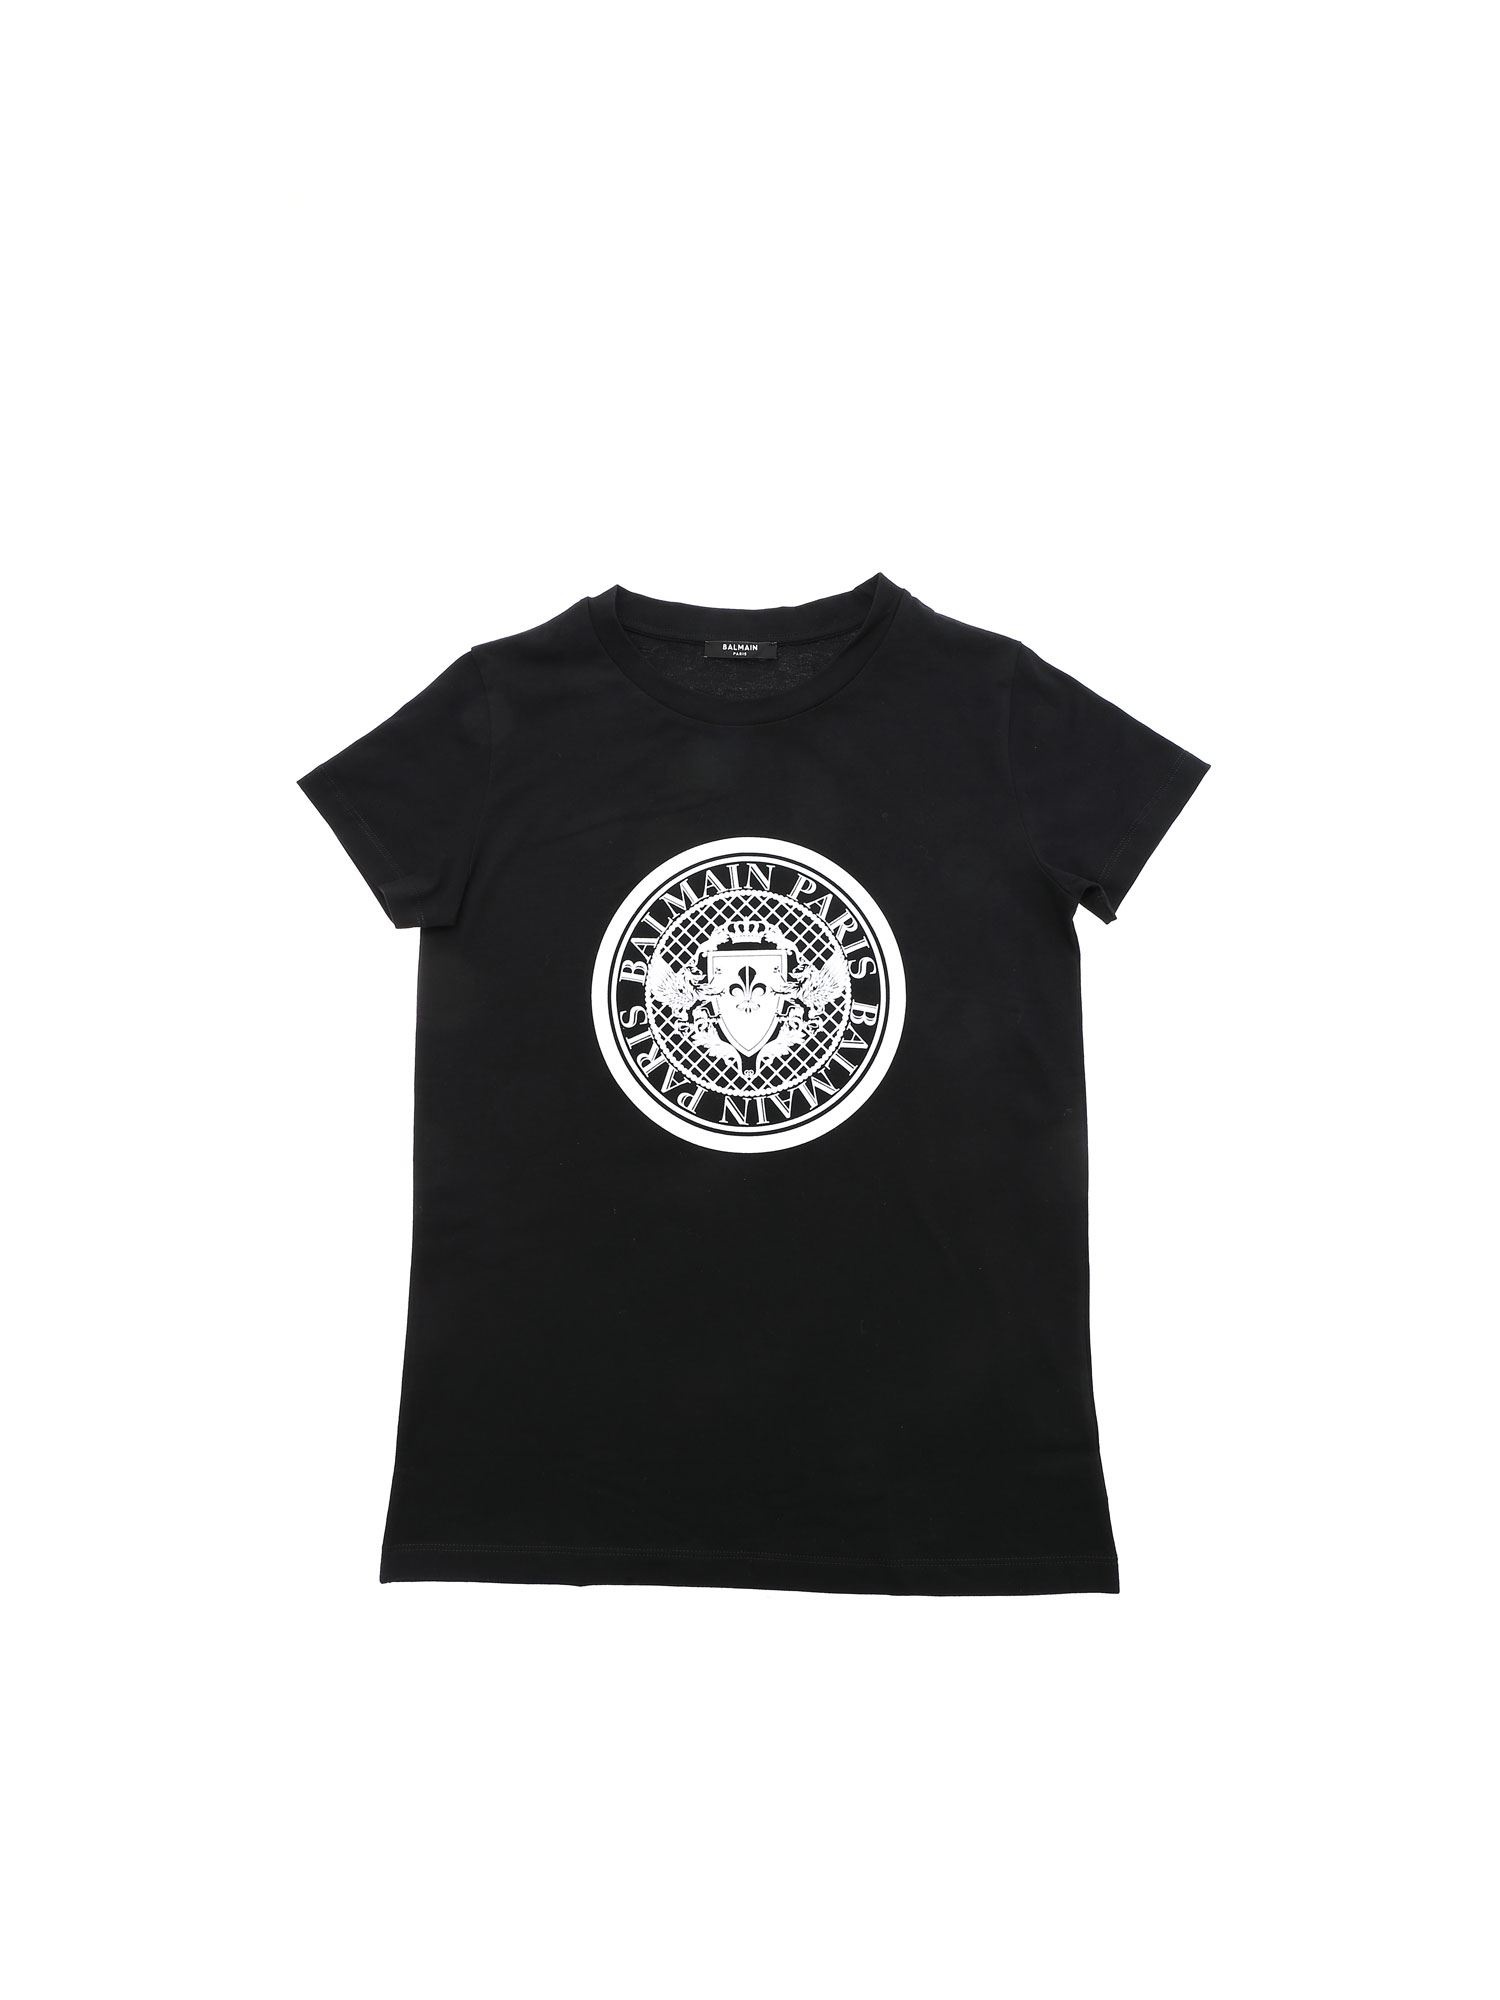 Balmain Kids' Medallion Logo Print T-shirt In Black